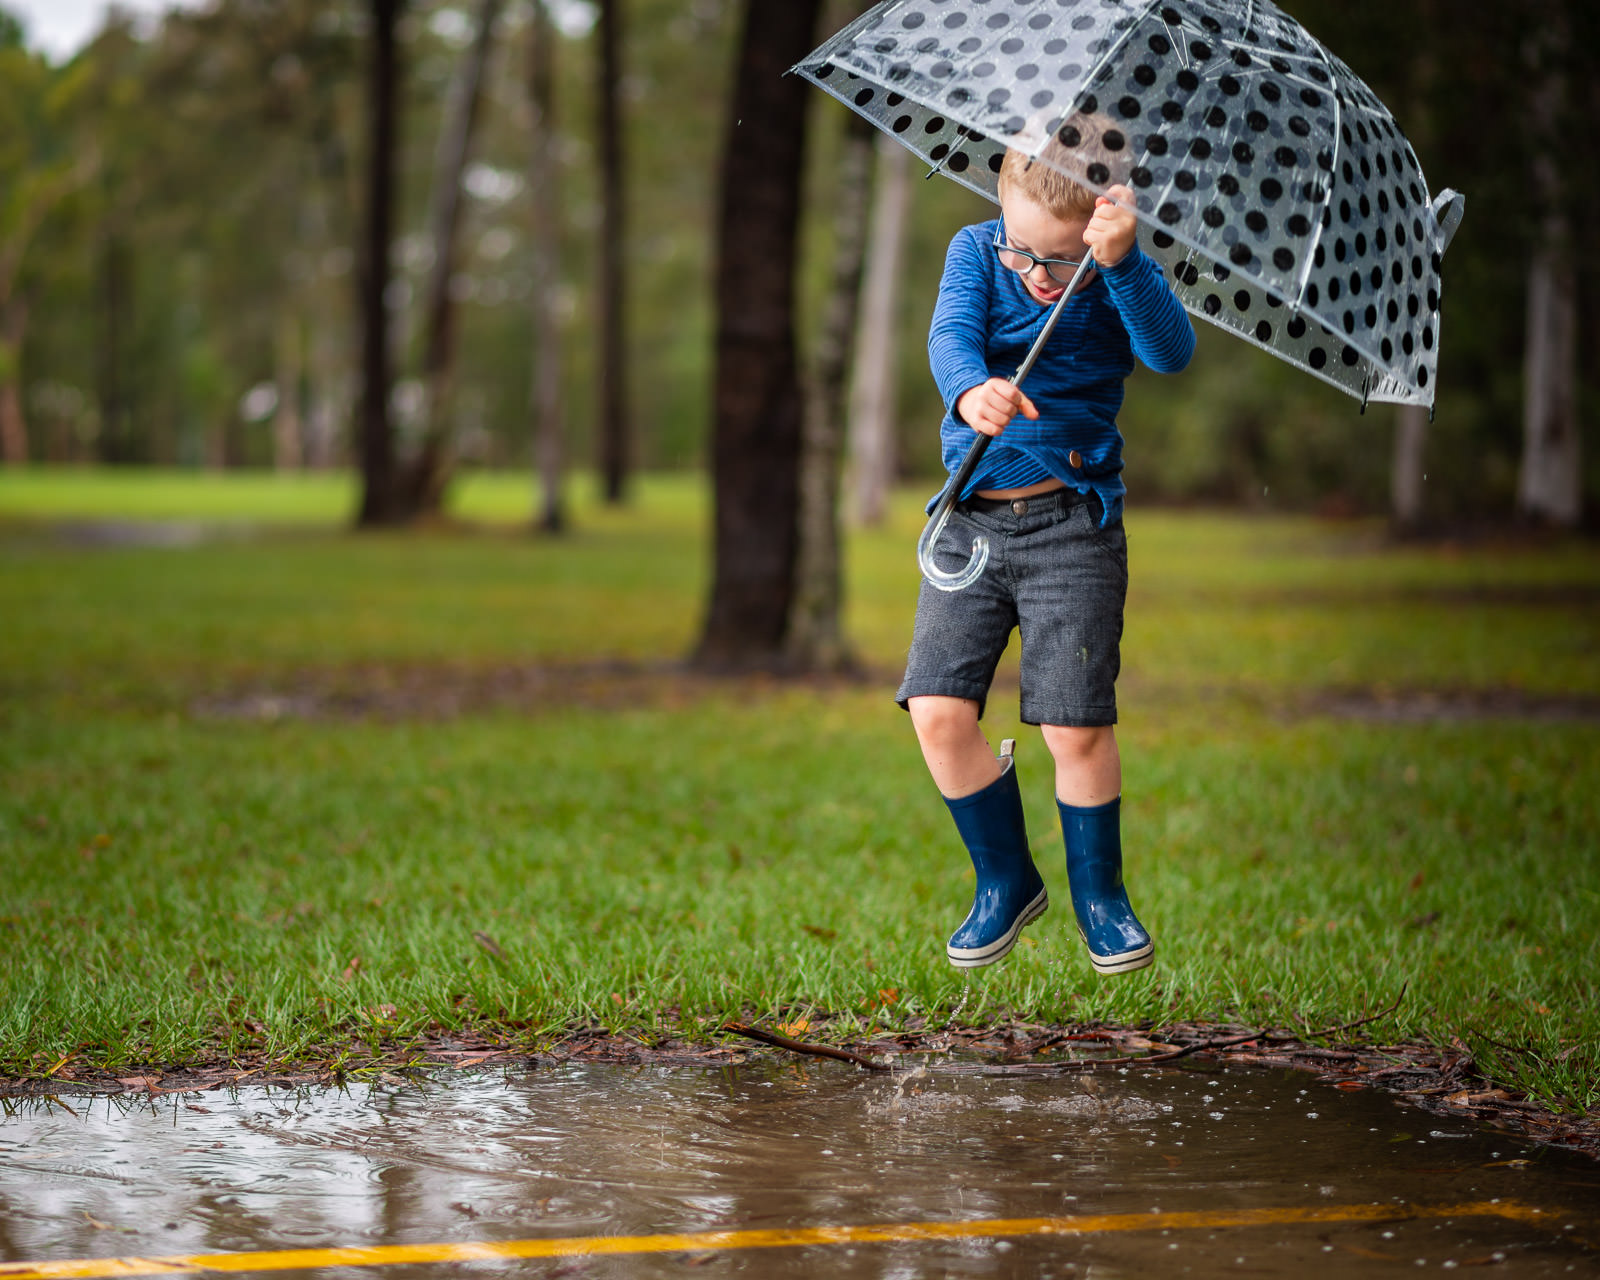 Jumping high in the air splashing in puddles during outdoor family portrait session in the rain | Caboolture family portraiture